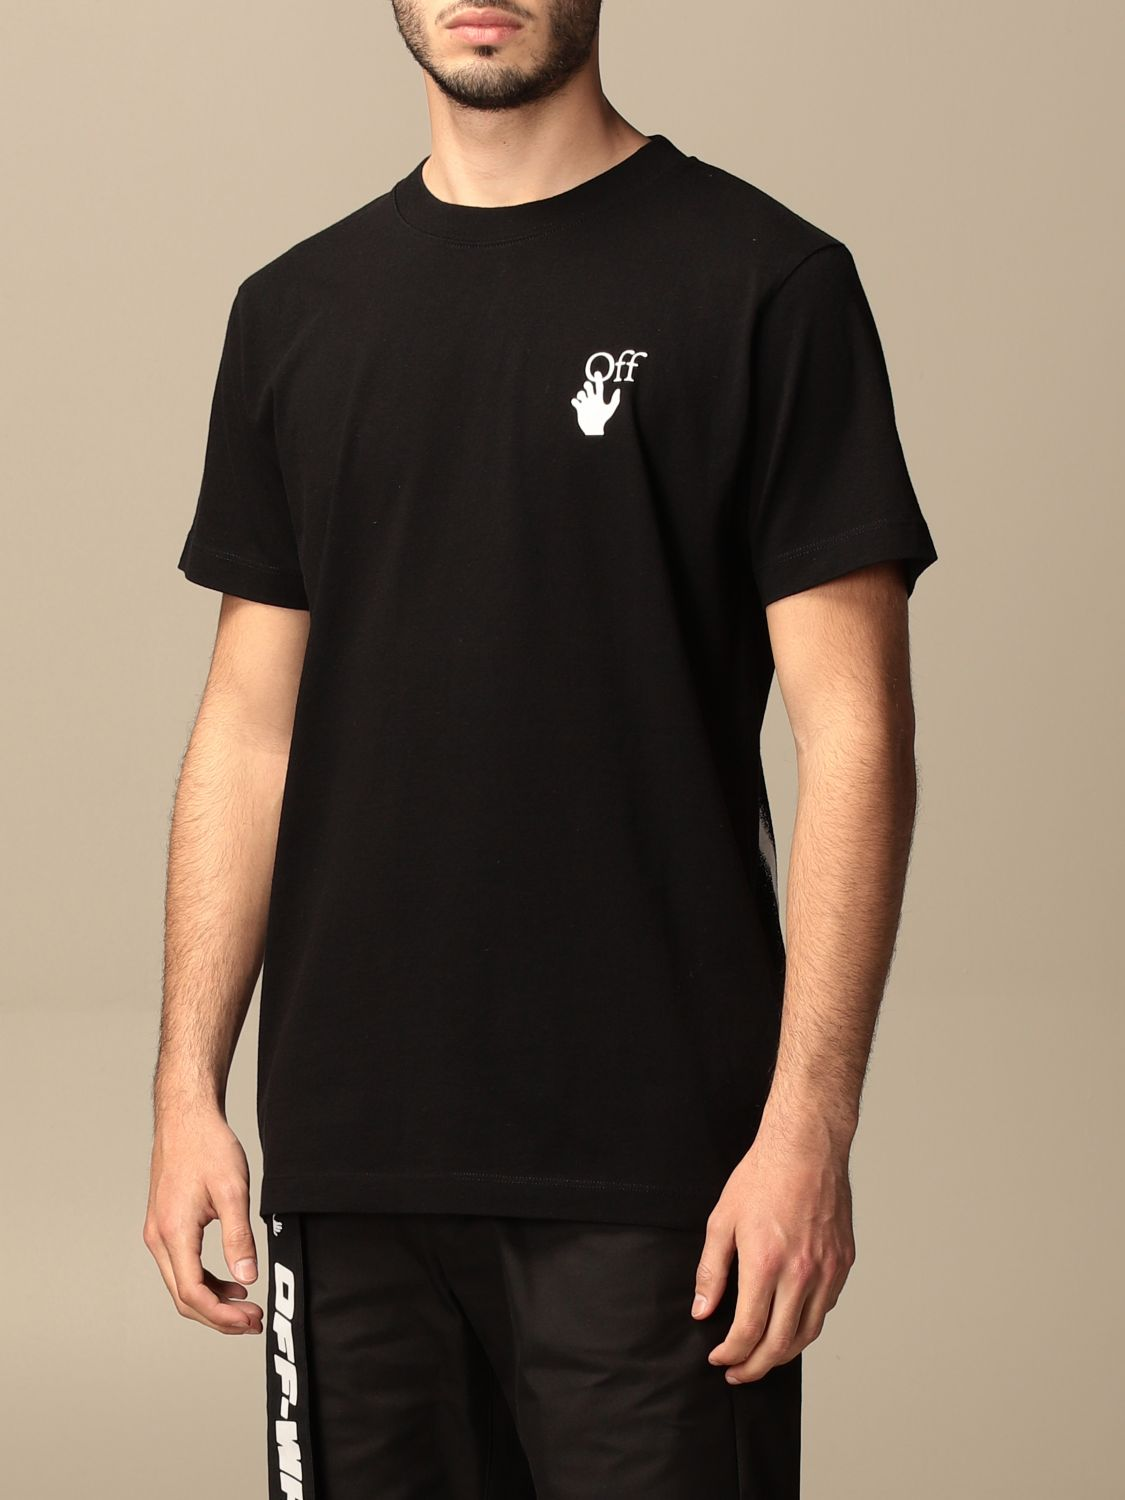 T-shirt Off White: Off White cotton t-shirt with arrows logo black 3